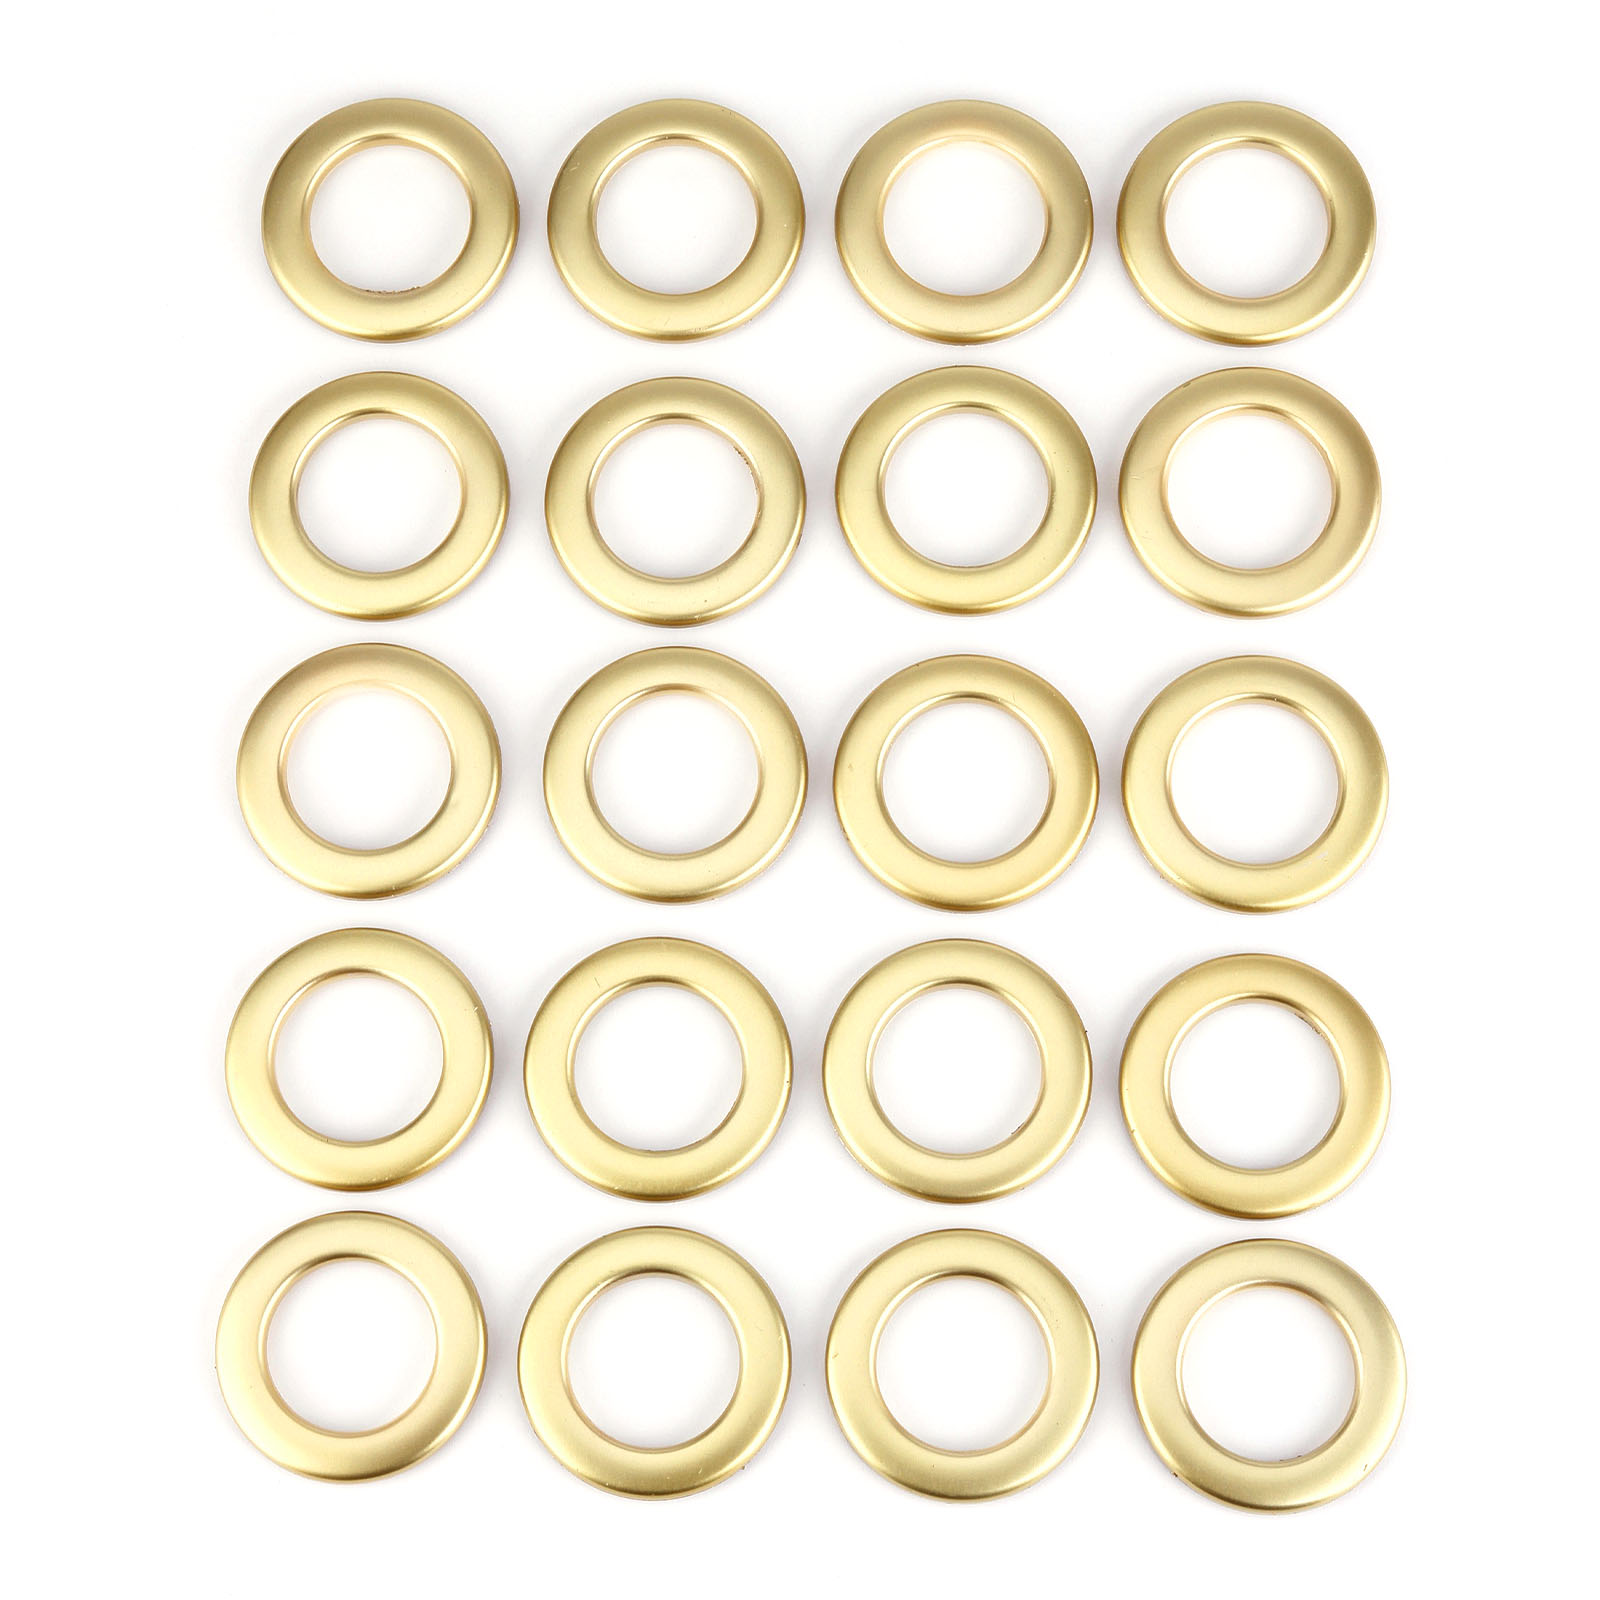 Plastic curtain clips - Set Of 20 Plastic Snap Drapery Curtain Eyelets Heading Rings Clips Grommets